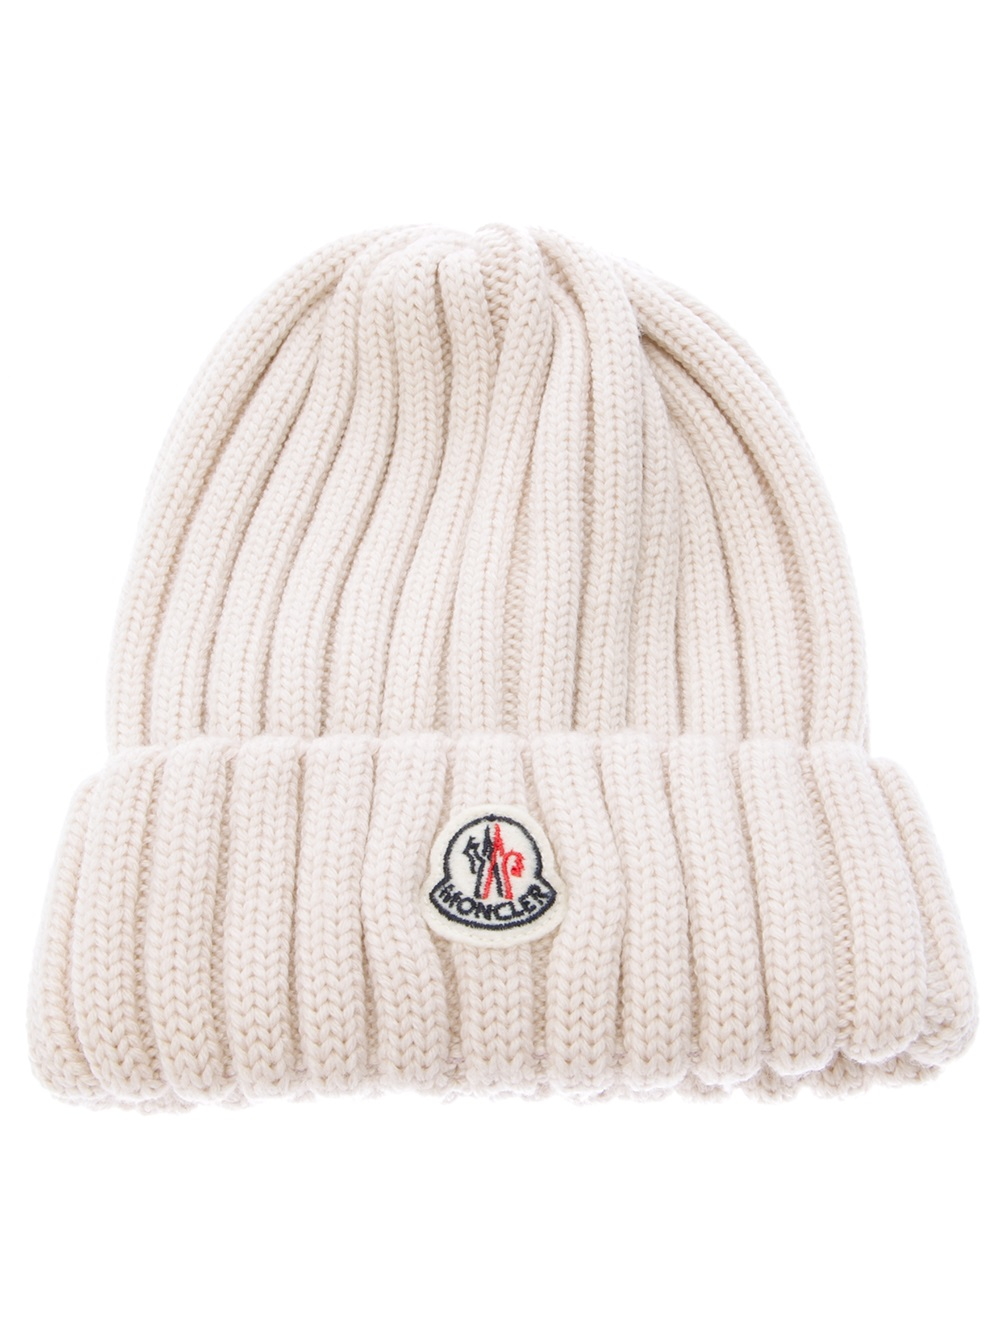 546f8b7f8cb Lyst - Moncler Wool Ribbed Knit Beanie Hat in Natural for Men